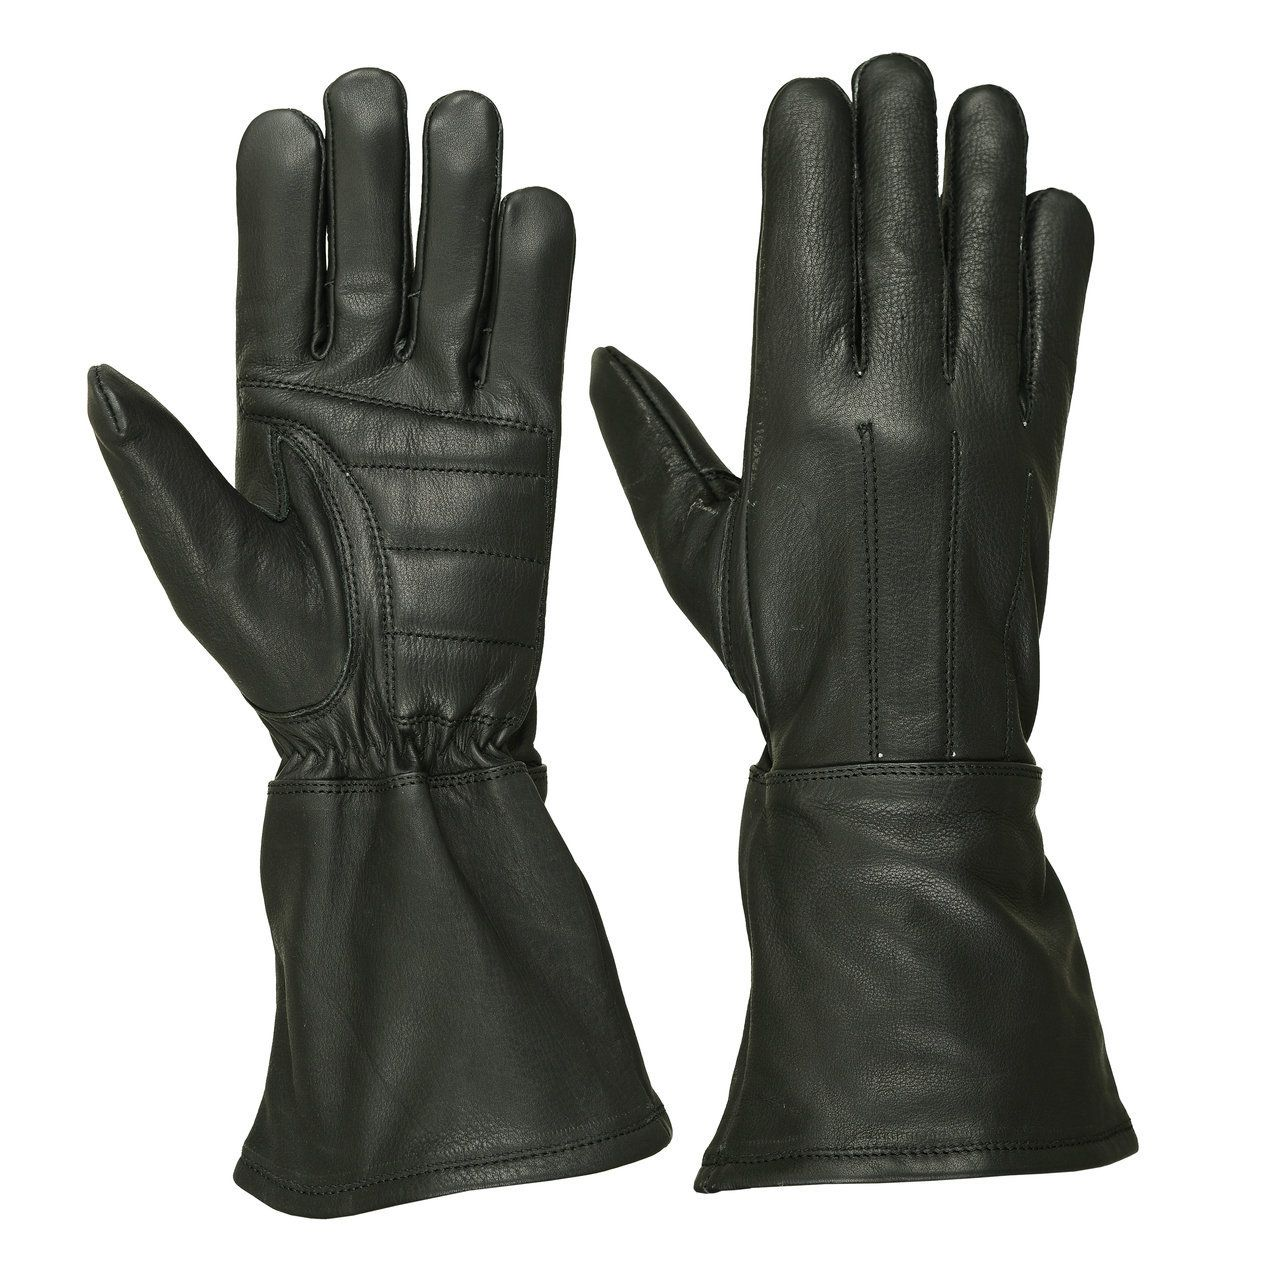 Mens deerskin gloves - Men S Gloves Men S Deerskin Gloves Hugger Gloves